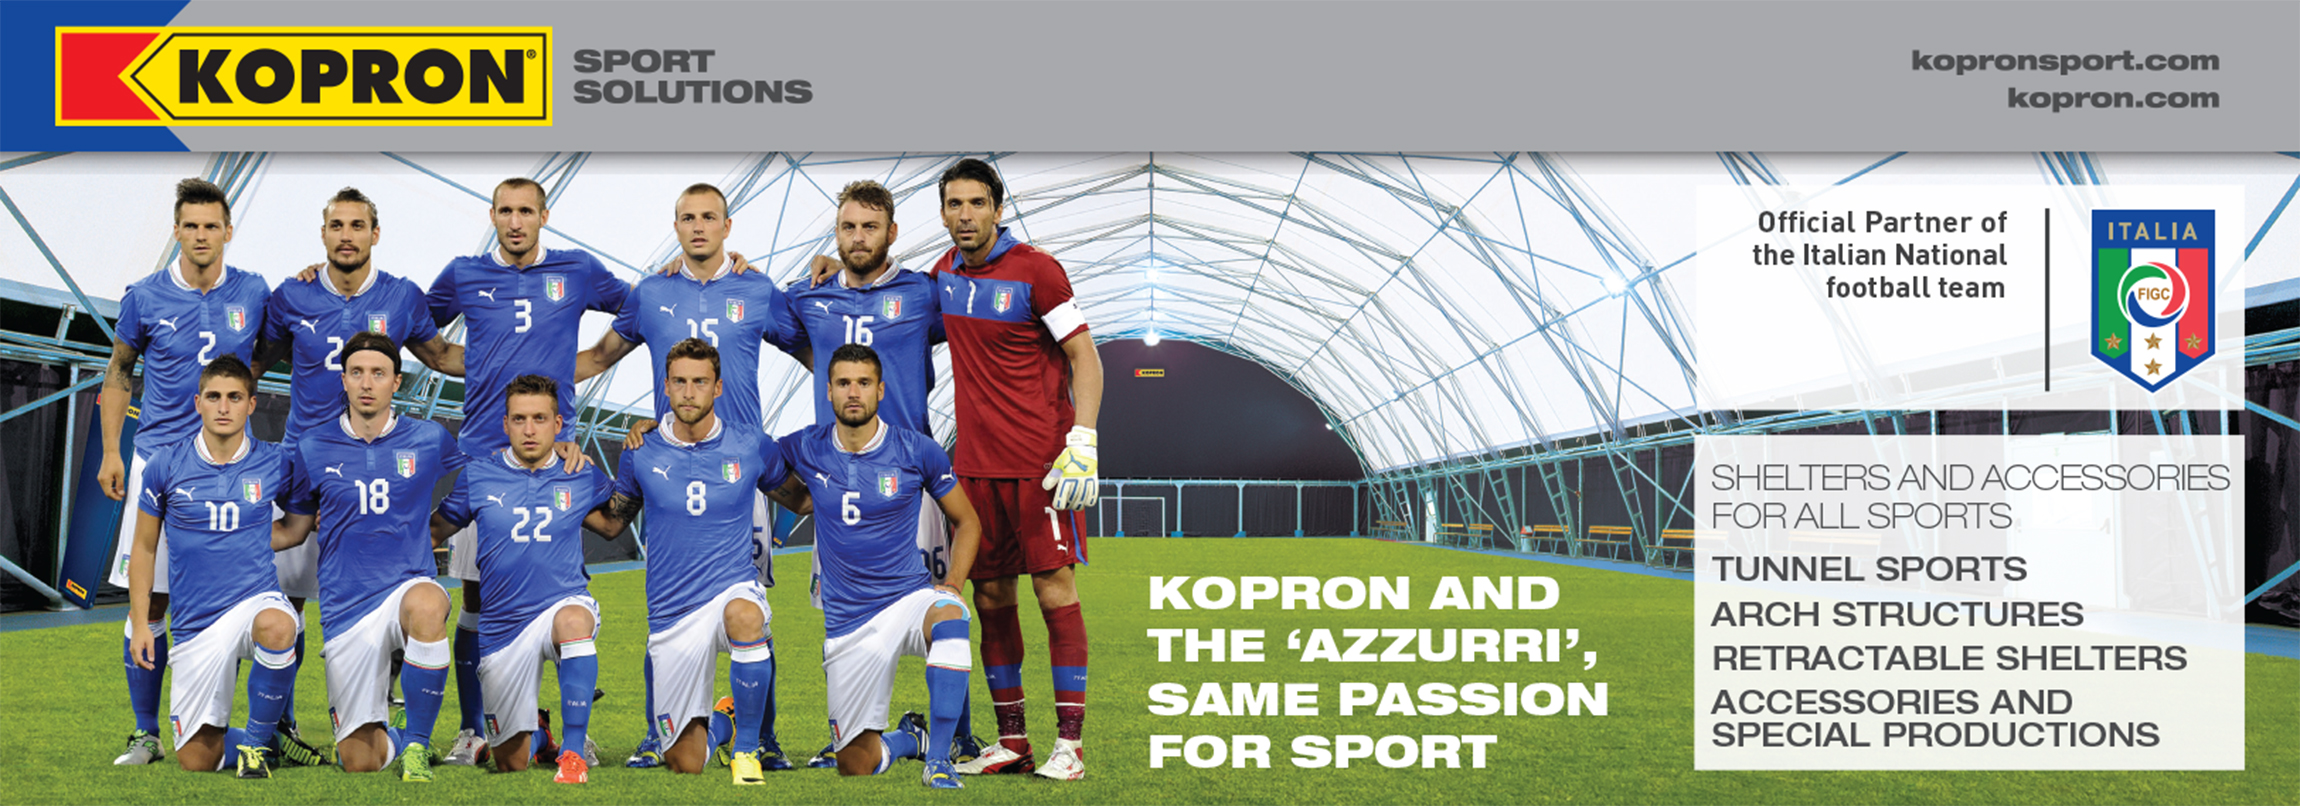 Kopron-Official-Partner-Italian-National-Football-Team